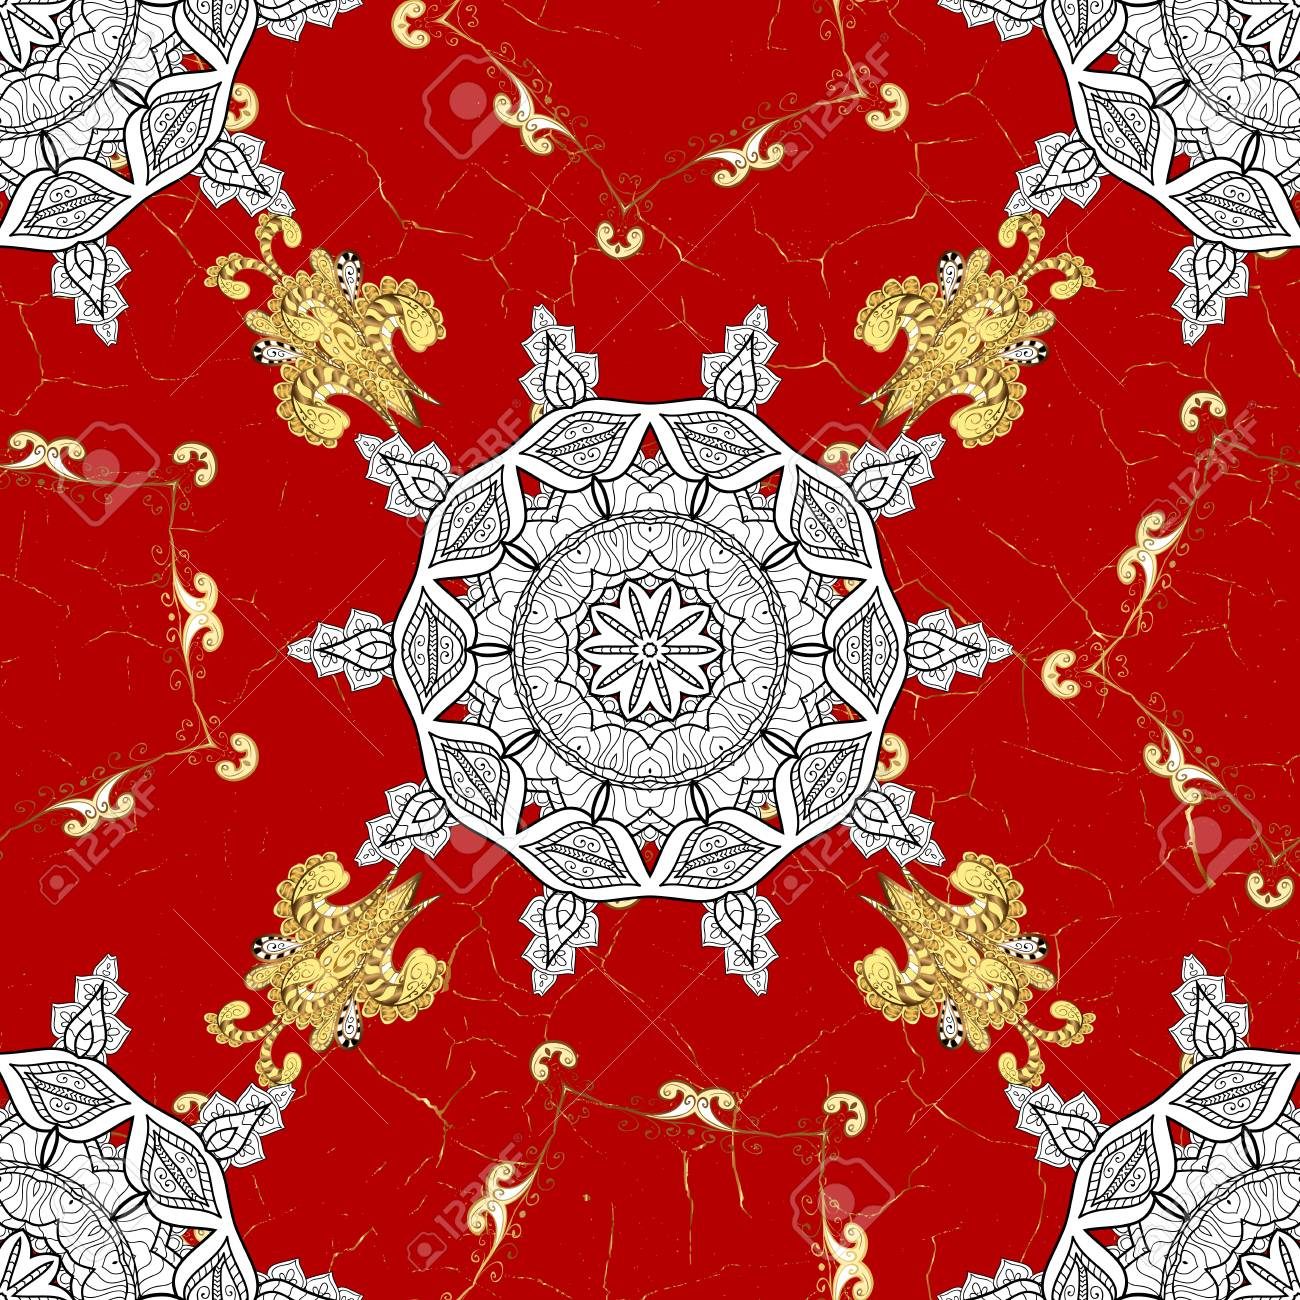 golden pattern on red background with golden elements islamic stock photo picture and royalty free image image 72135682 golden pattern on red background with golden elements islamic